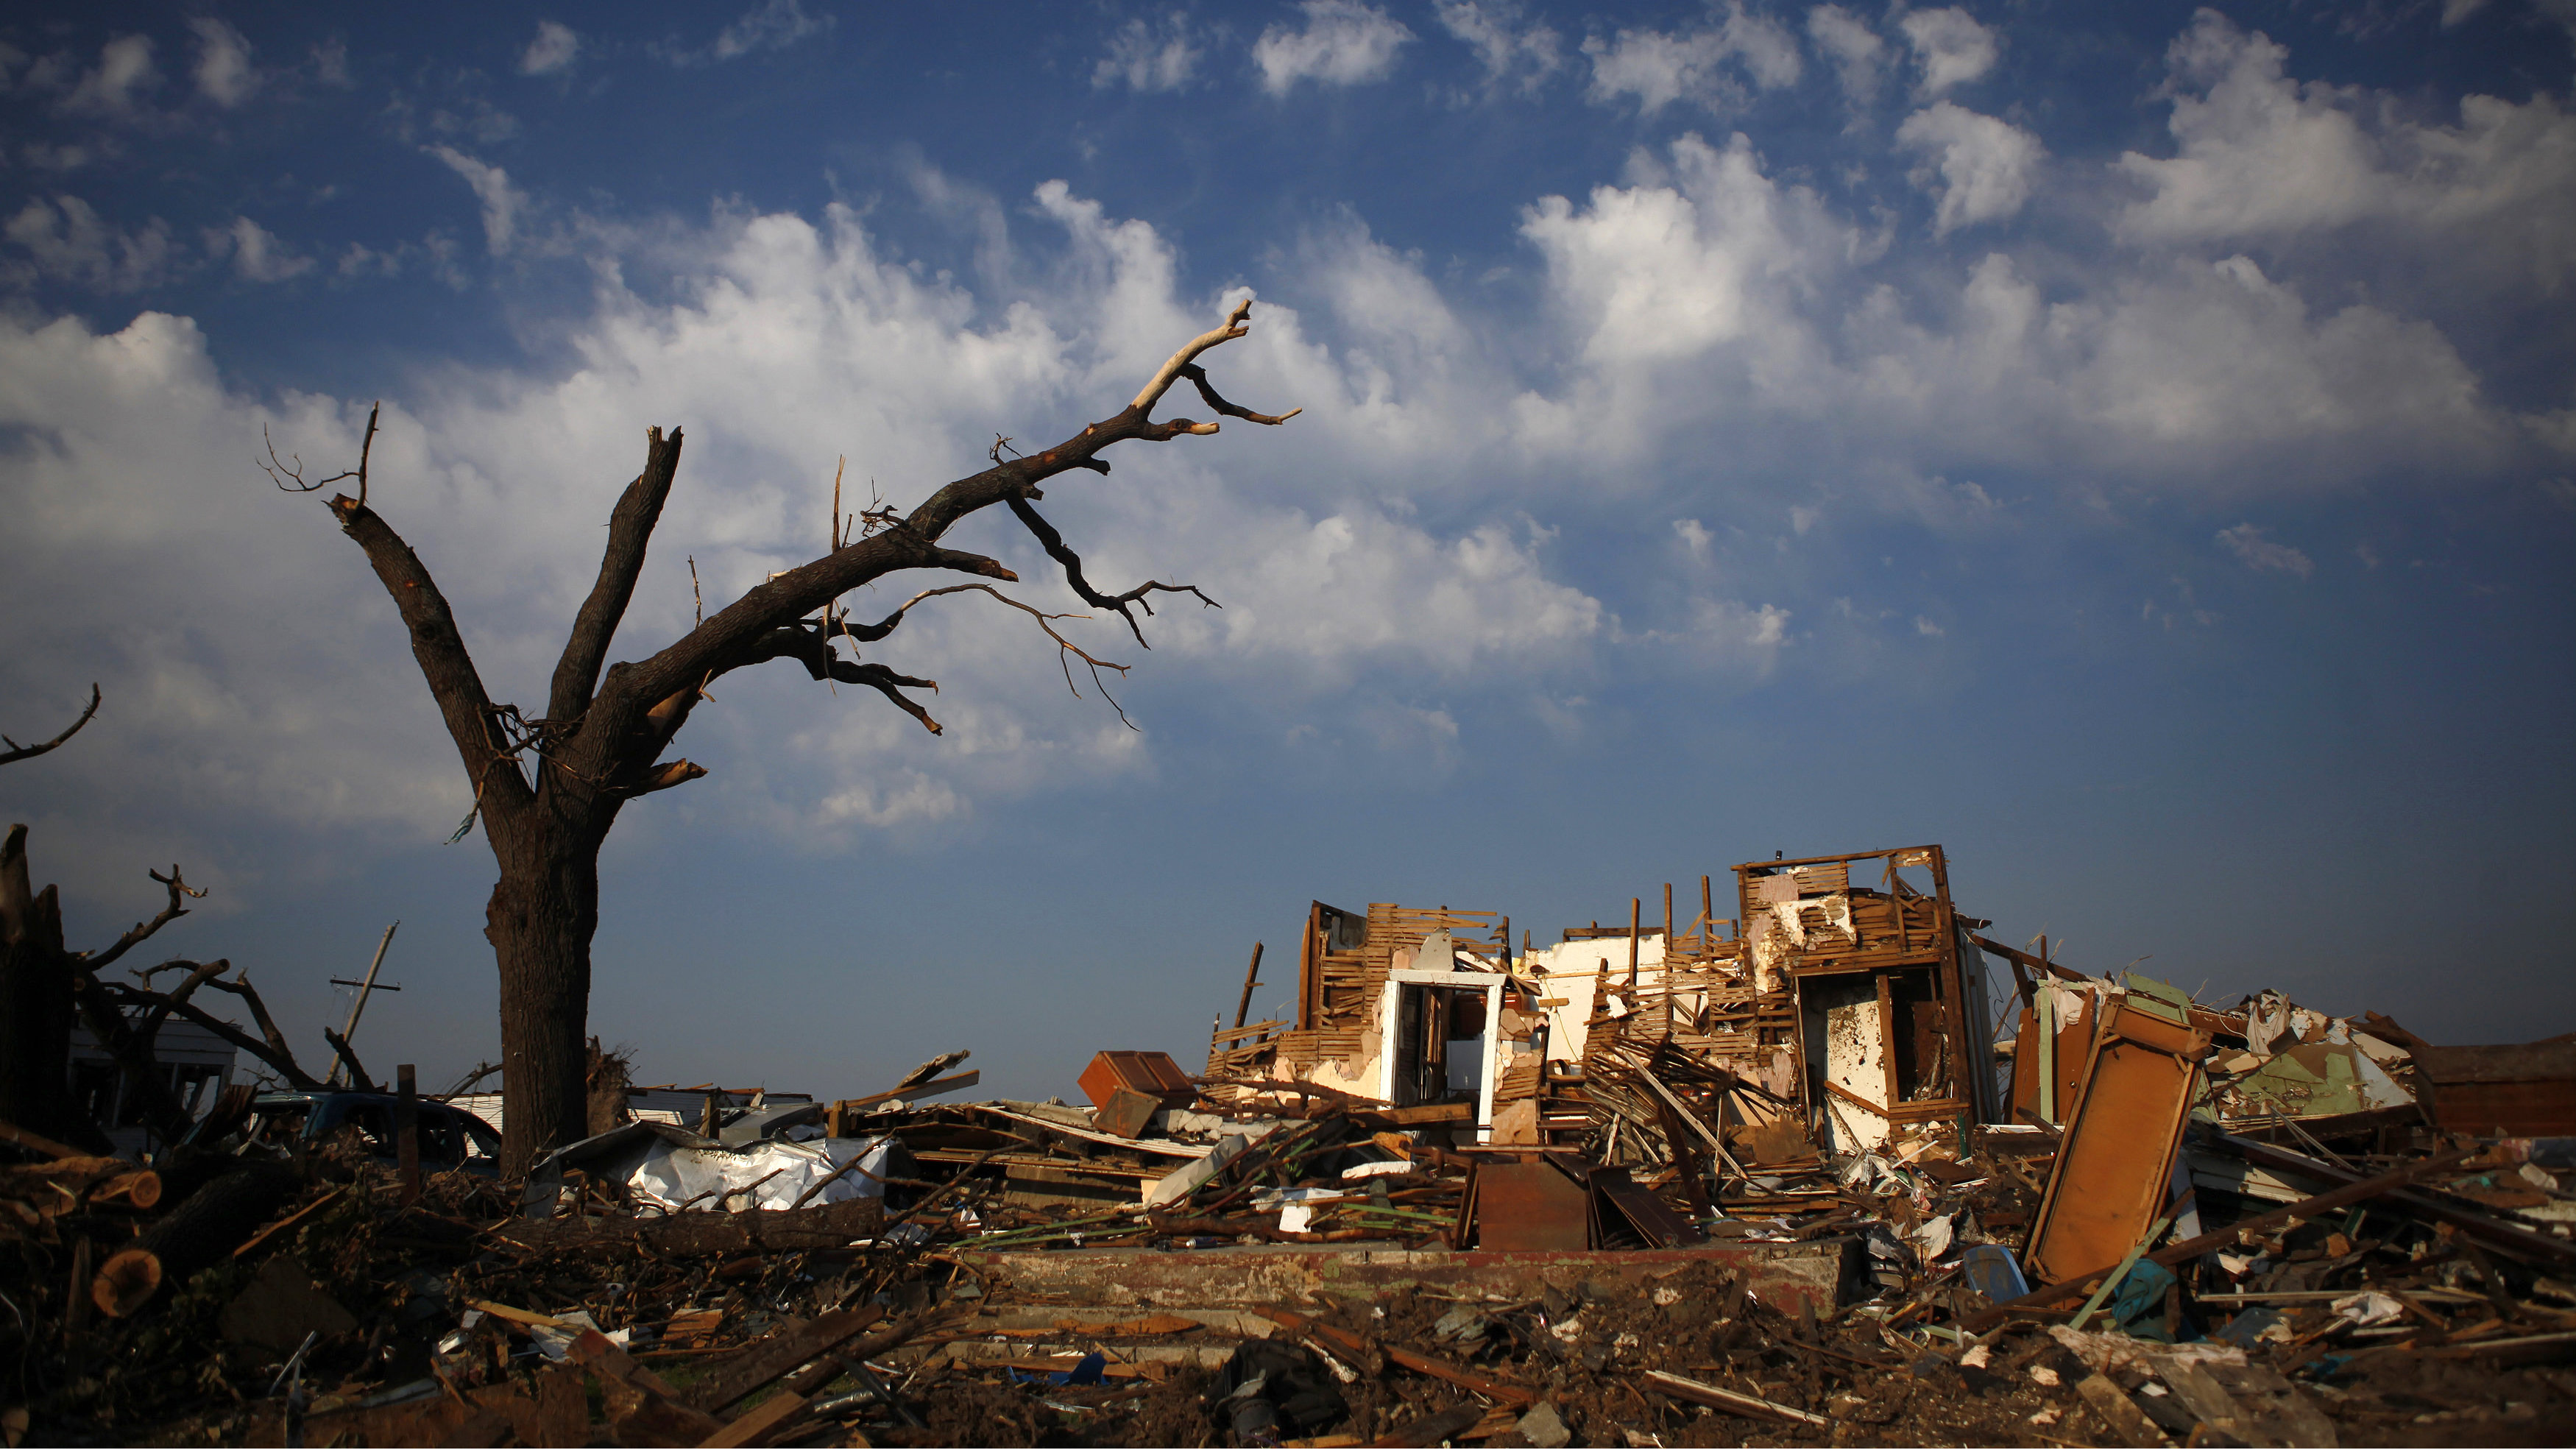 A destroyed home is seen in Joplin, Missouri May 30, 2011. A May 22, 2011 tornado in Joplin, a city of 50,000 in southwestern Missouri, was the deadliest single twister in the United States since 1947. In addition to the at least 139 people killed and more than 900 injured, scores are still unaccounted for more than a week later. The tornado churned through a stretch nearly a mile wide, damaging about 8,000 buildings in Joplin.